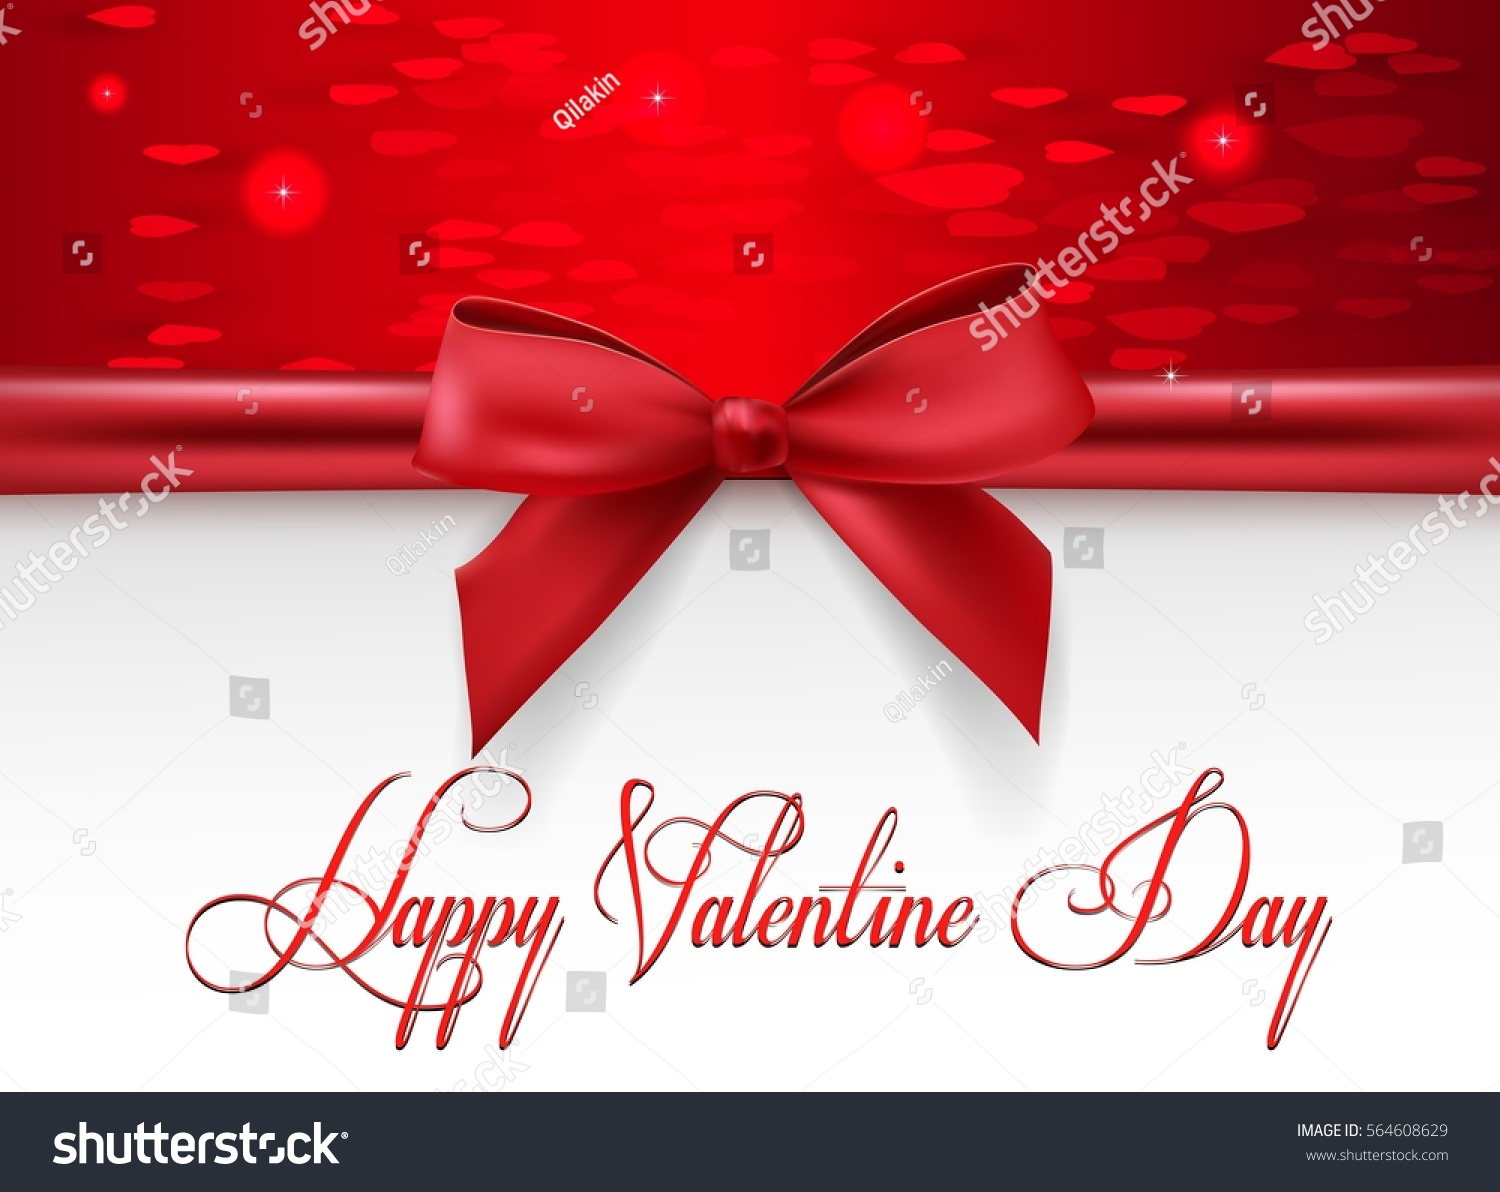 Greeting card valentines day stock illustration 564608629 shutterstock greeting card valentines day m4hsunfo